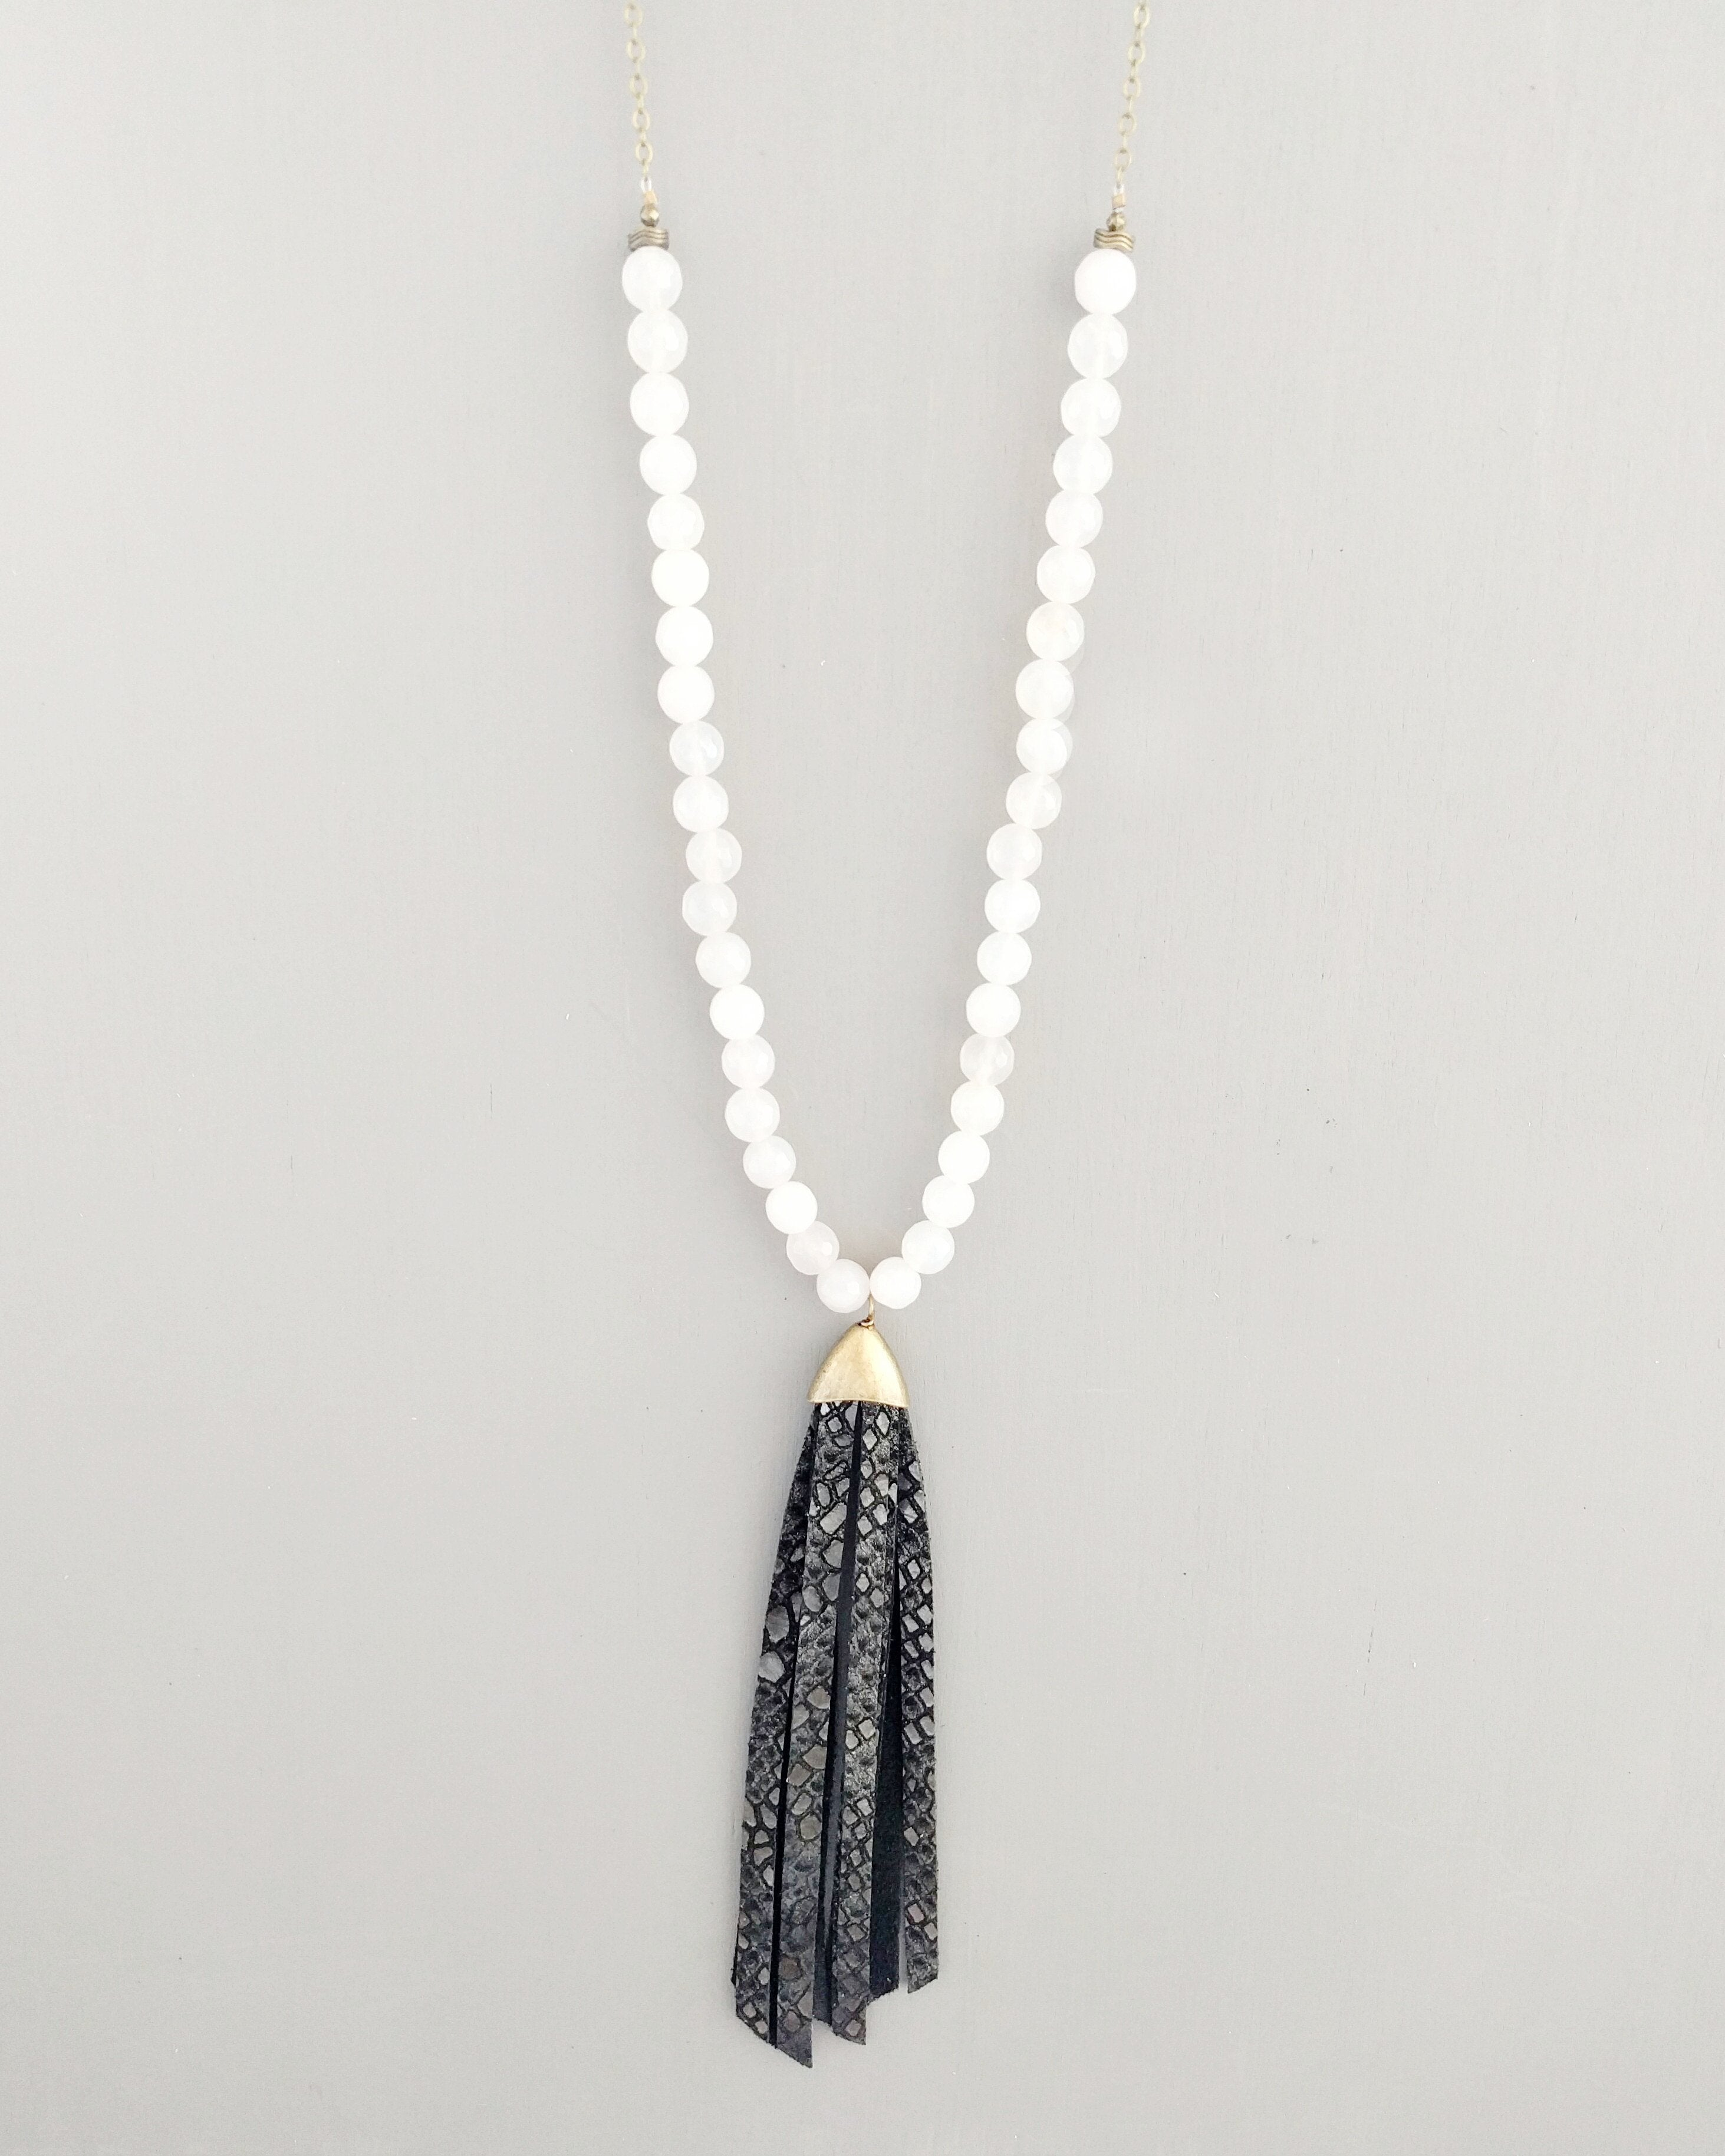 Handmade Haitian White and Black Nellie Necklace